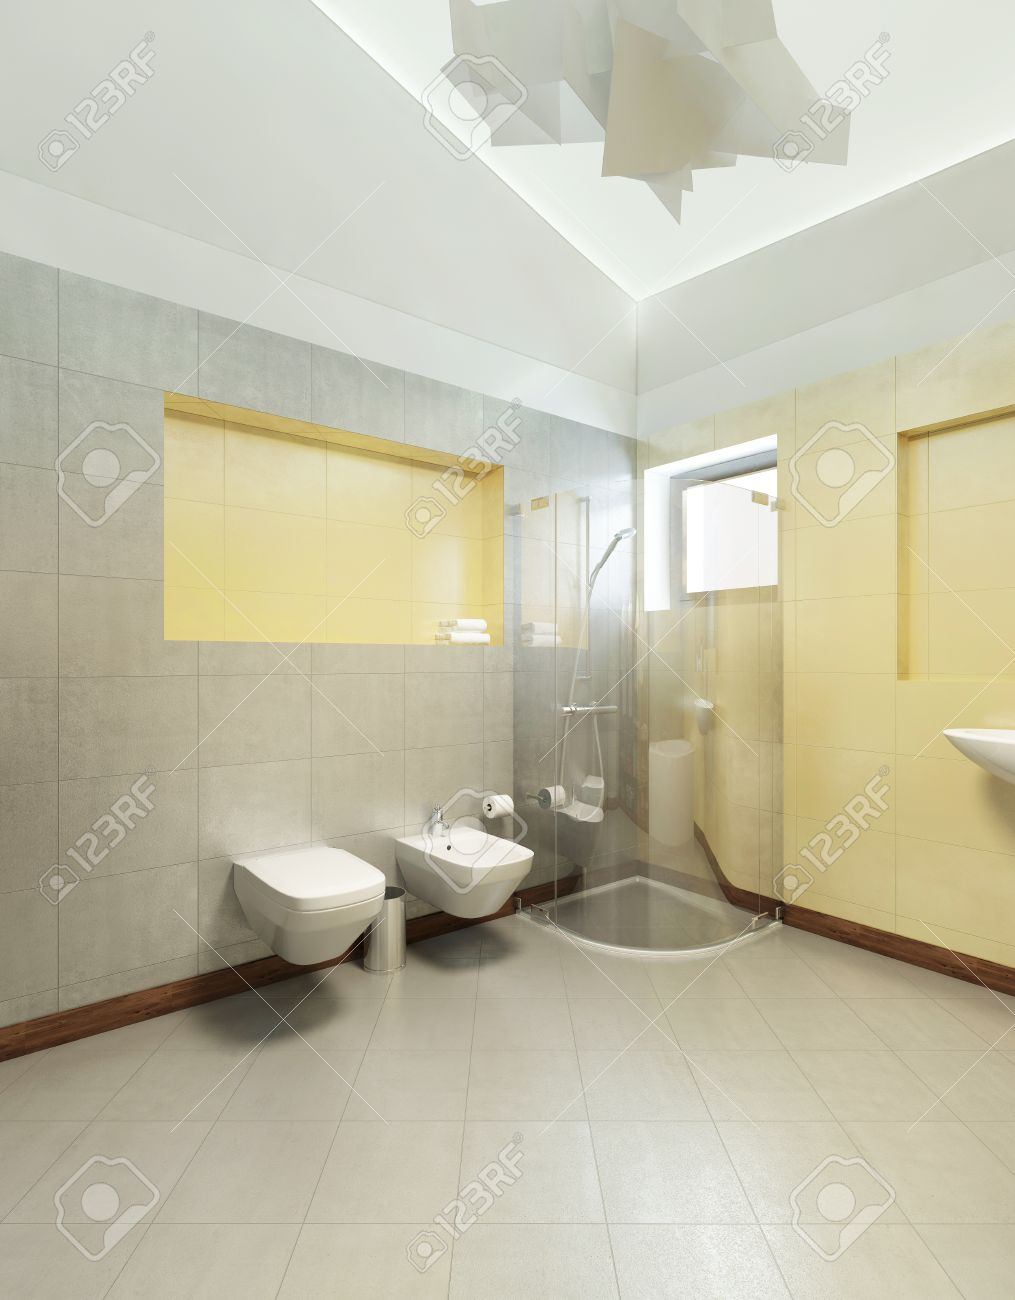 Bathroom In Contemporary Style Bathroom With Gray And Yellow